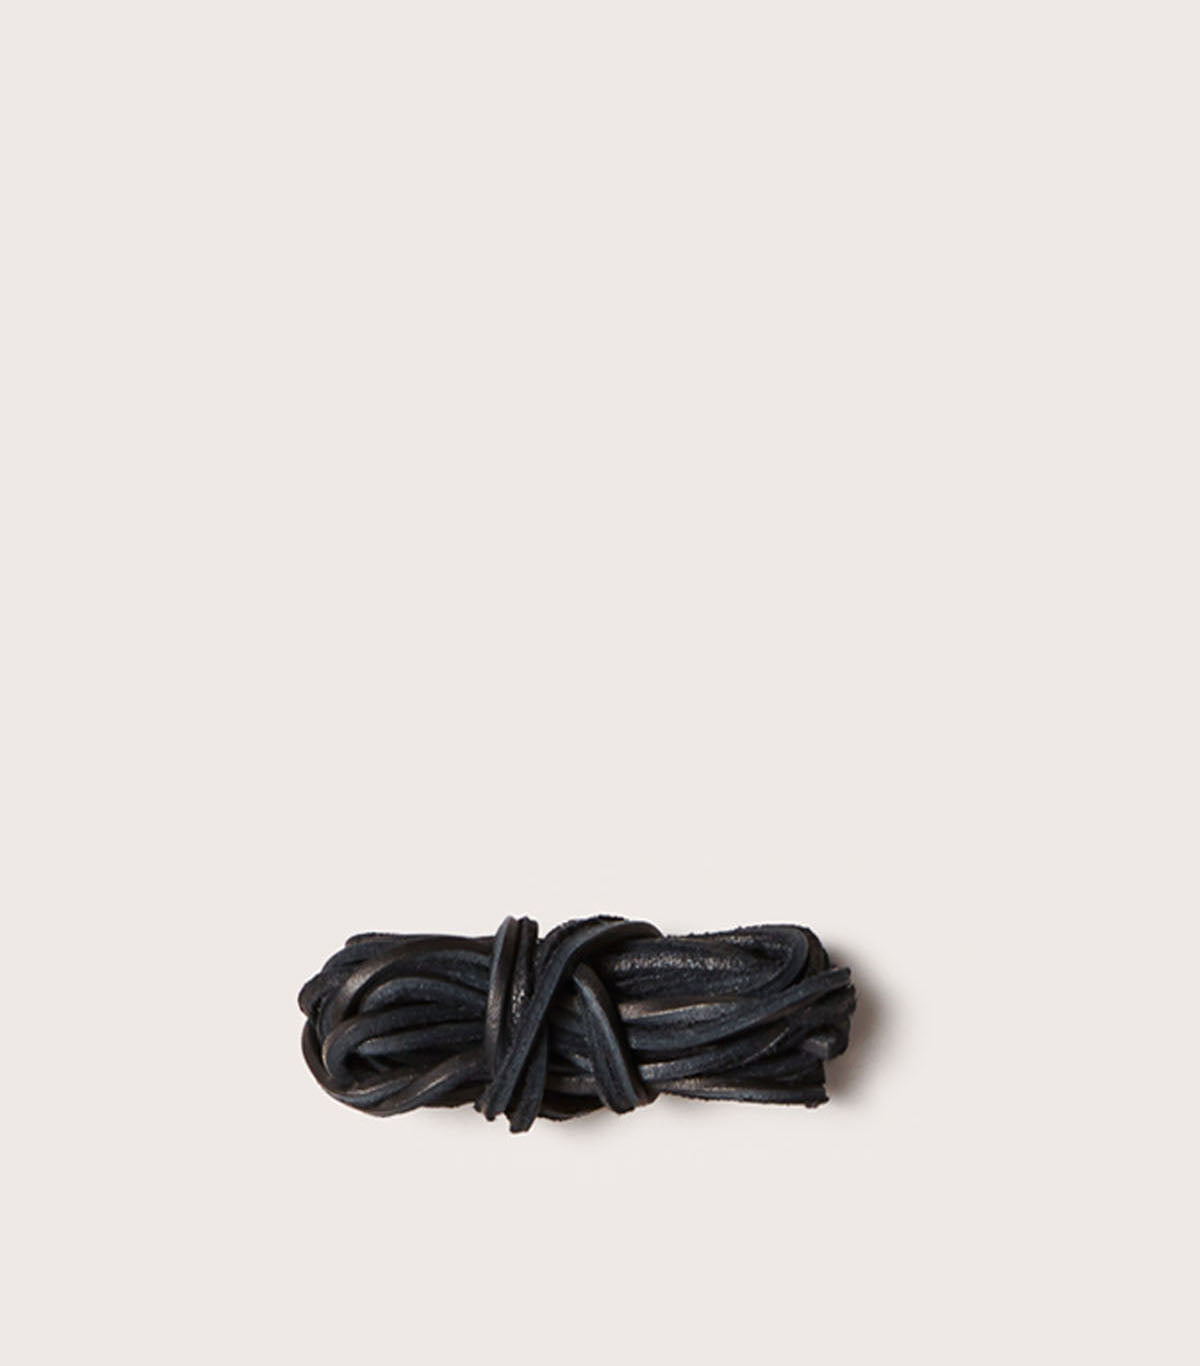 LEATHER LACES - SCLACEL_BLK